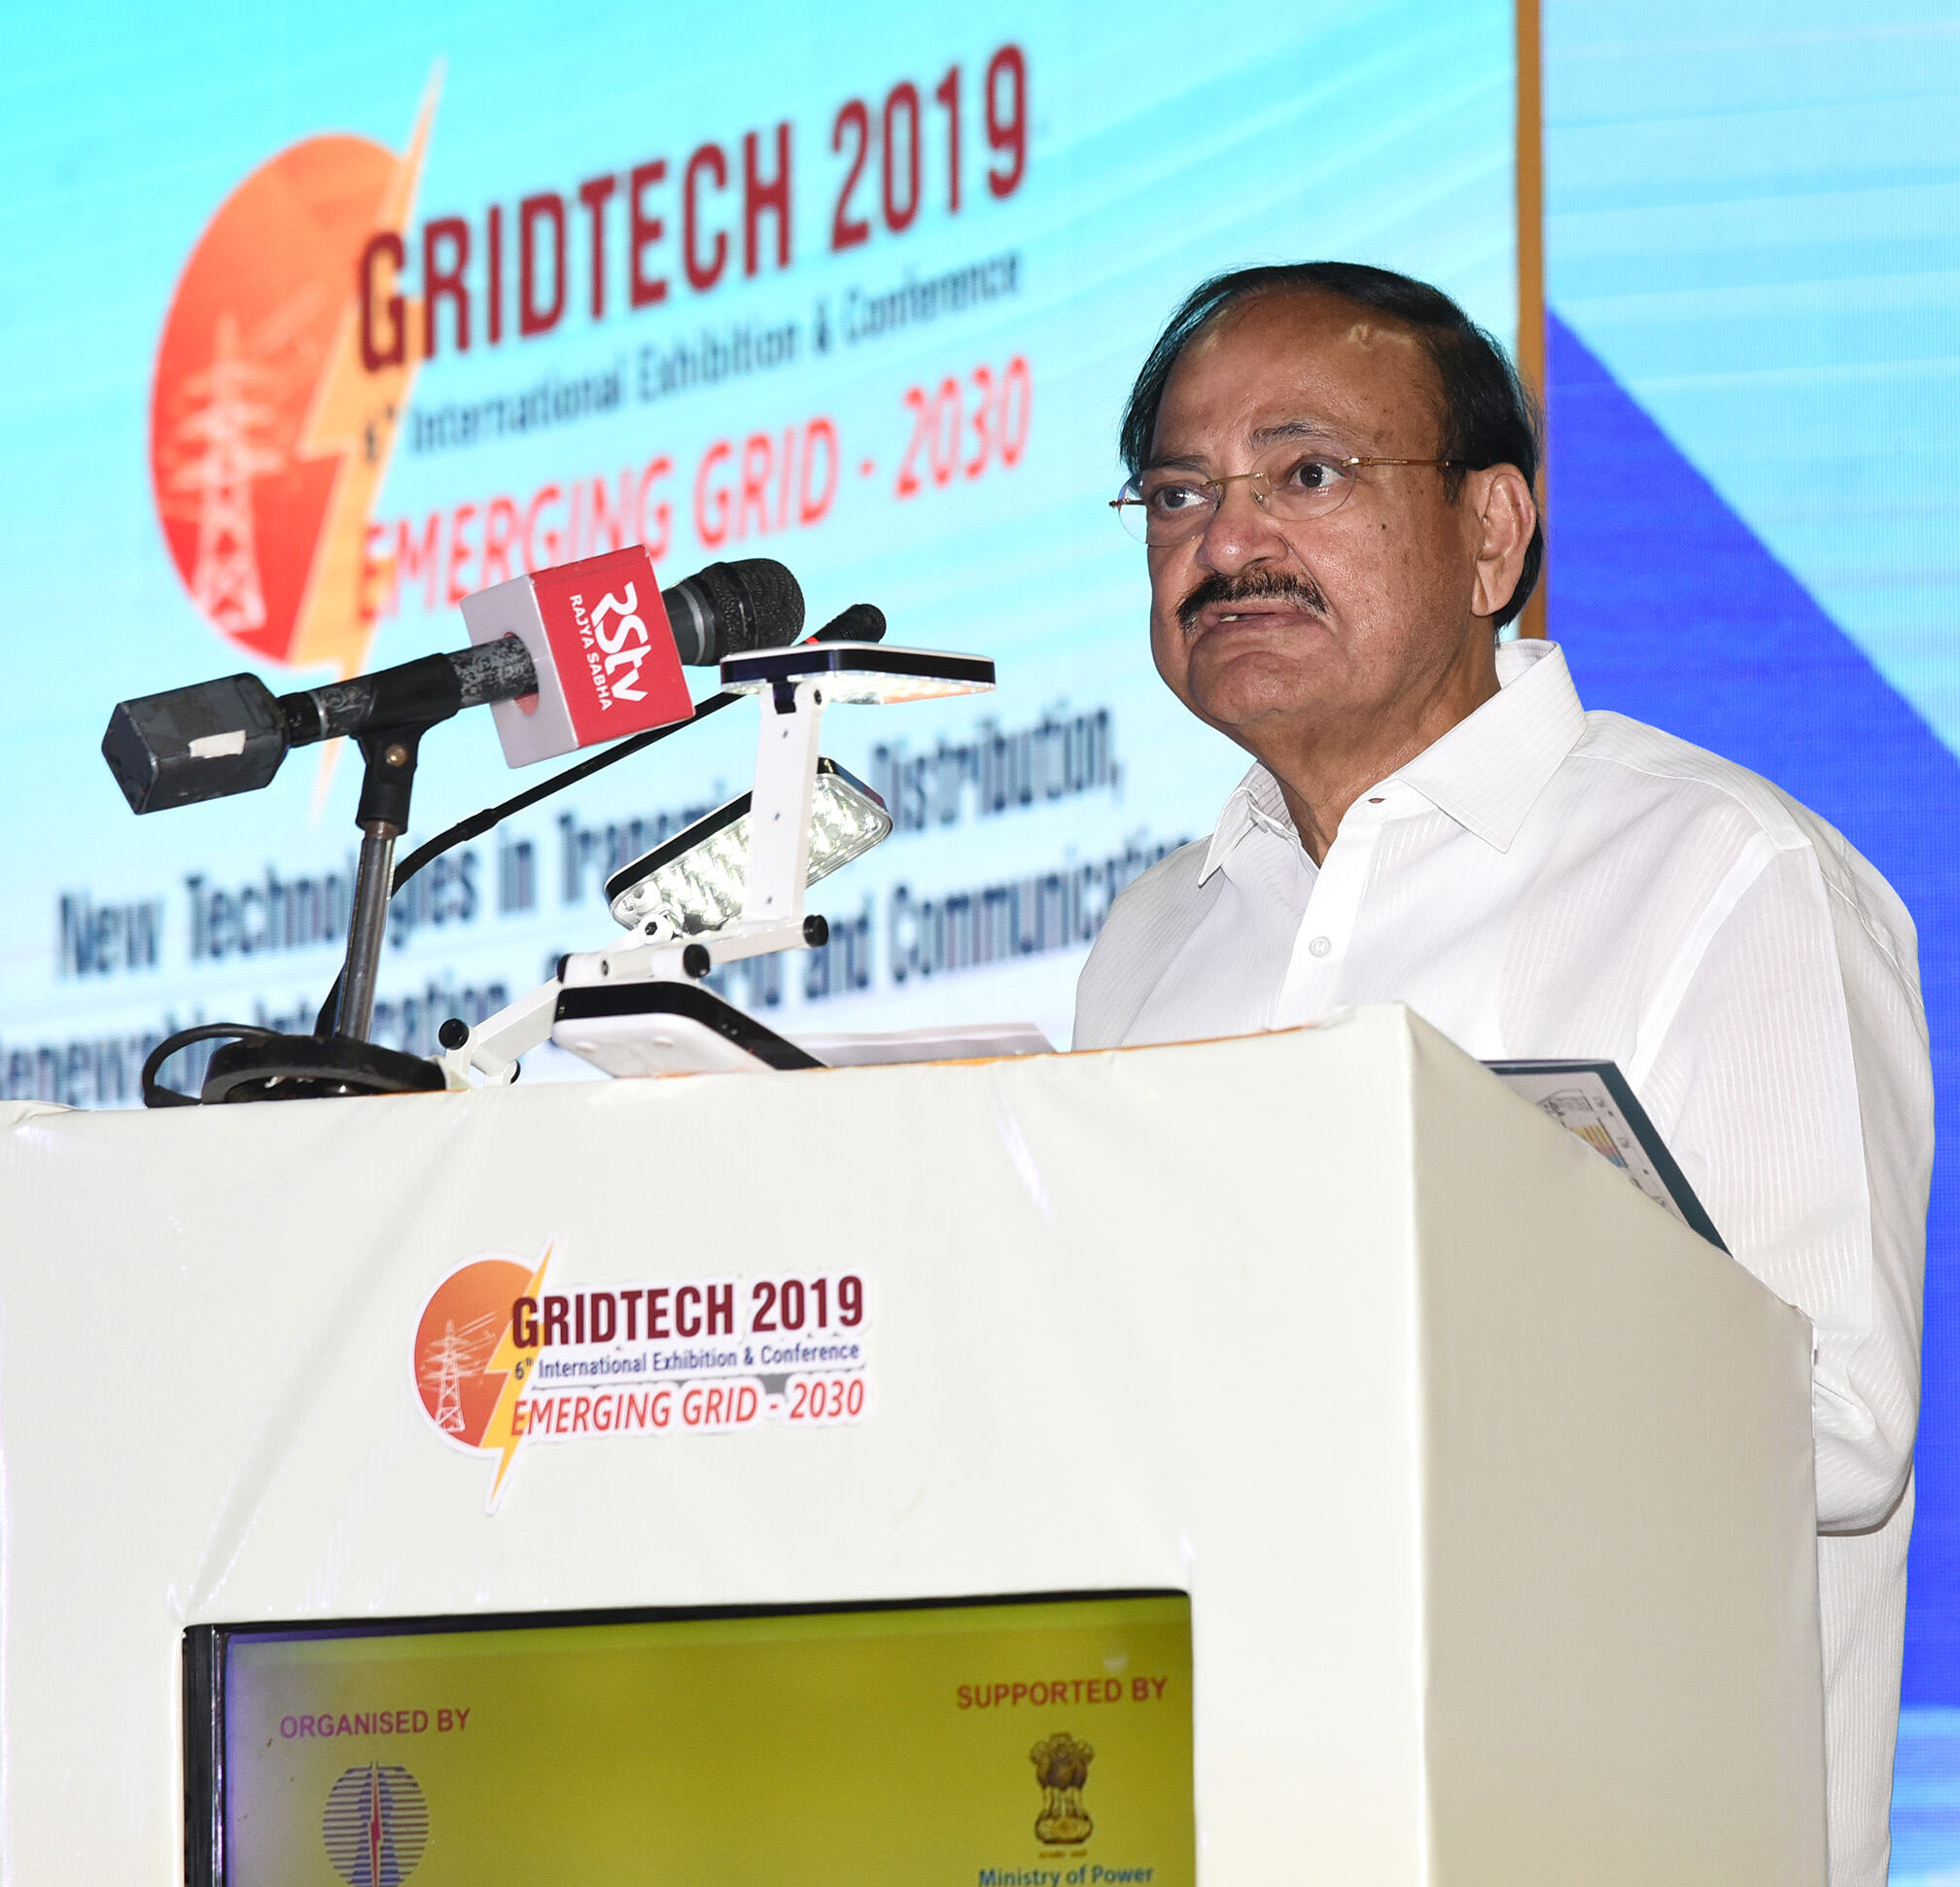 Time has arrived for India to re orient present education system to inculcate values, morals and ethics: Vice President